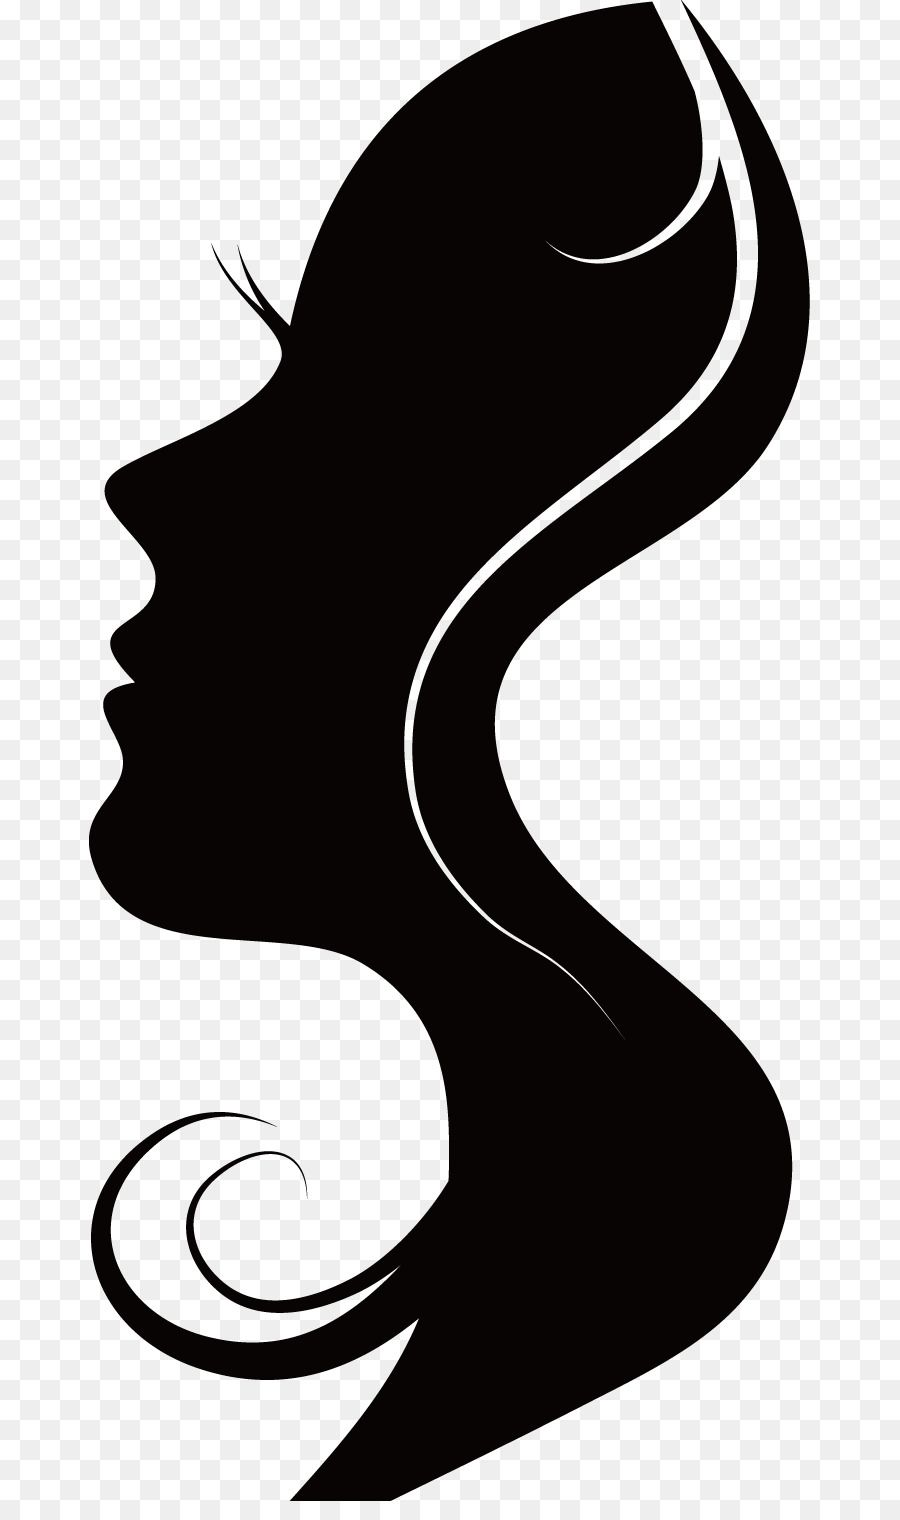 Silhouette Woman Woman Silhouettes Unlimited Download Kisspng Com Silhouette Art Silhouette Face Woman Face Silhouette